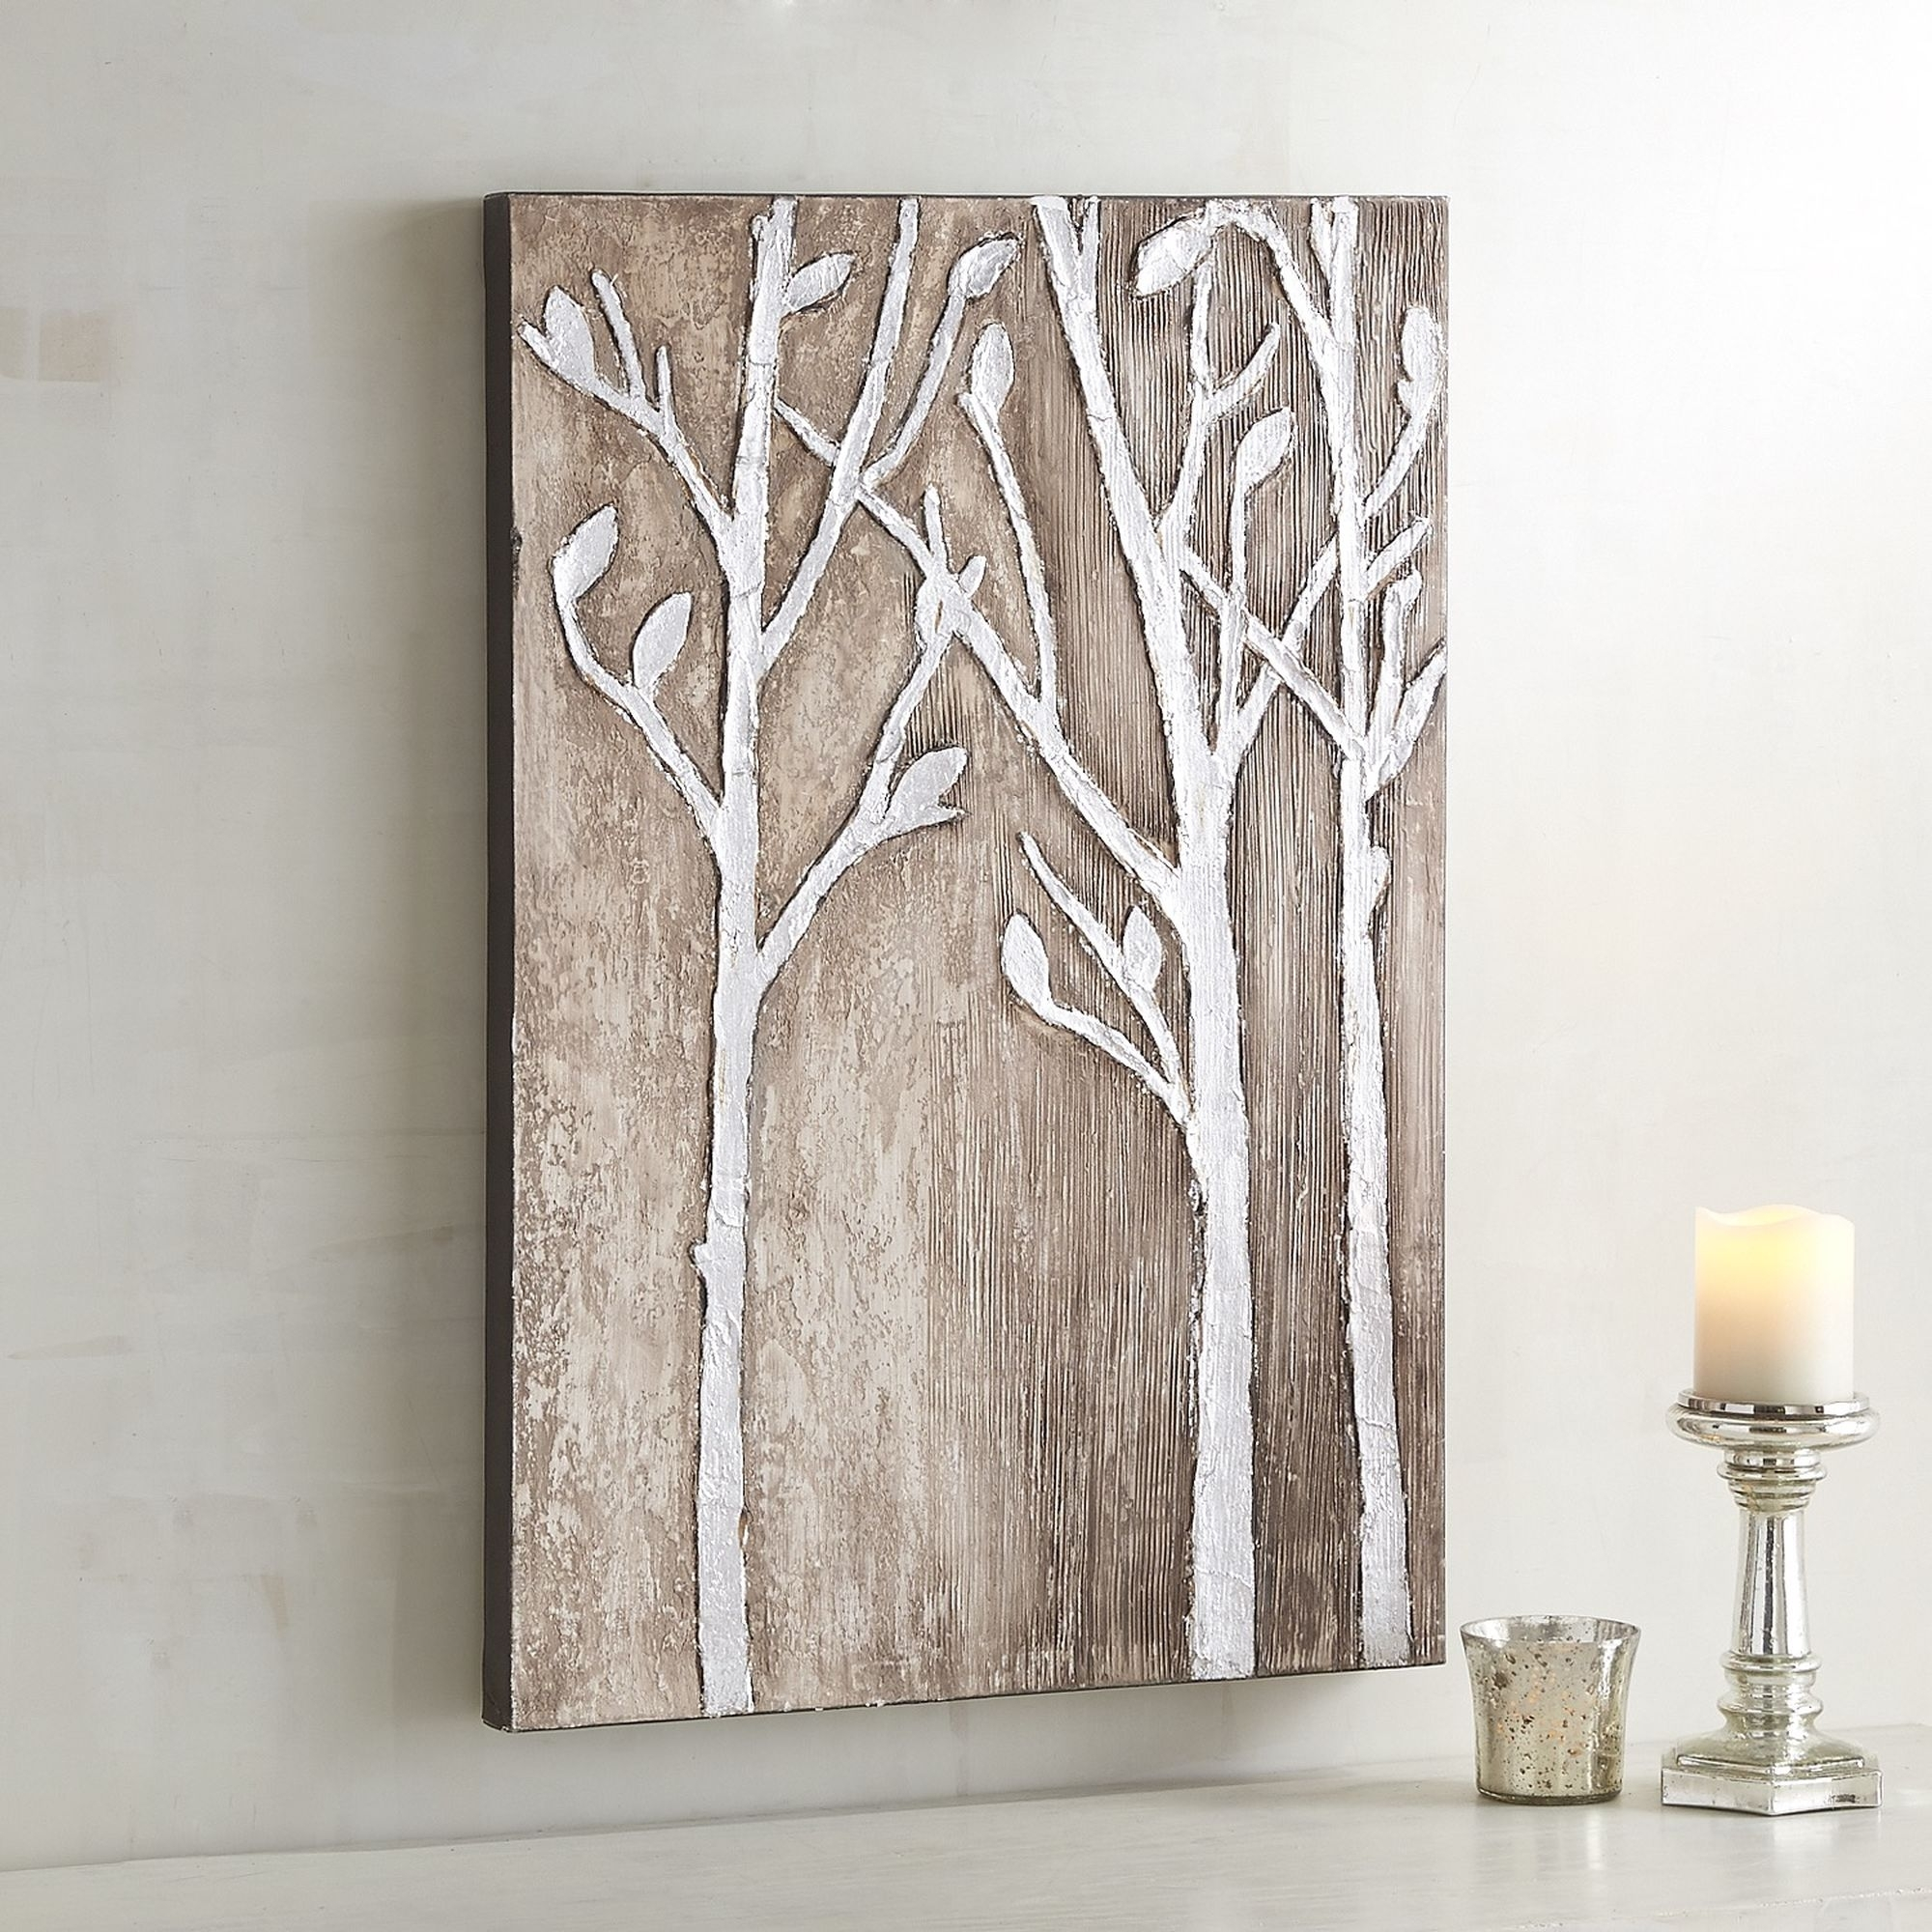 Pier One Silver Birch Wall Art $62 Acrylic On Canvas Wall Art (View 13 of 15)